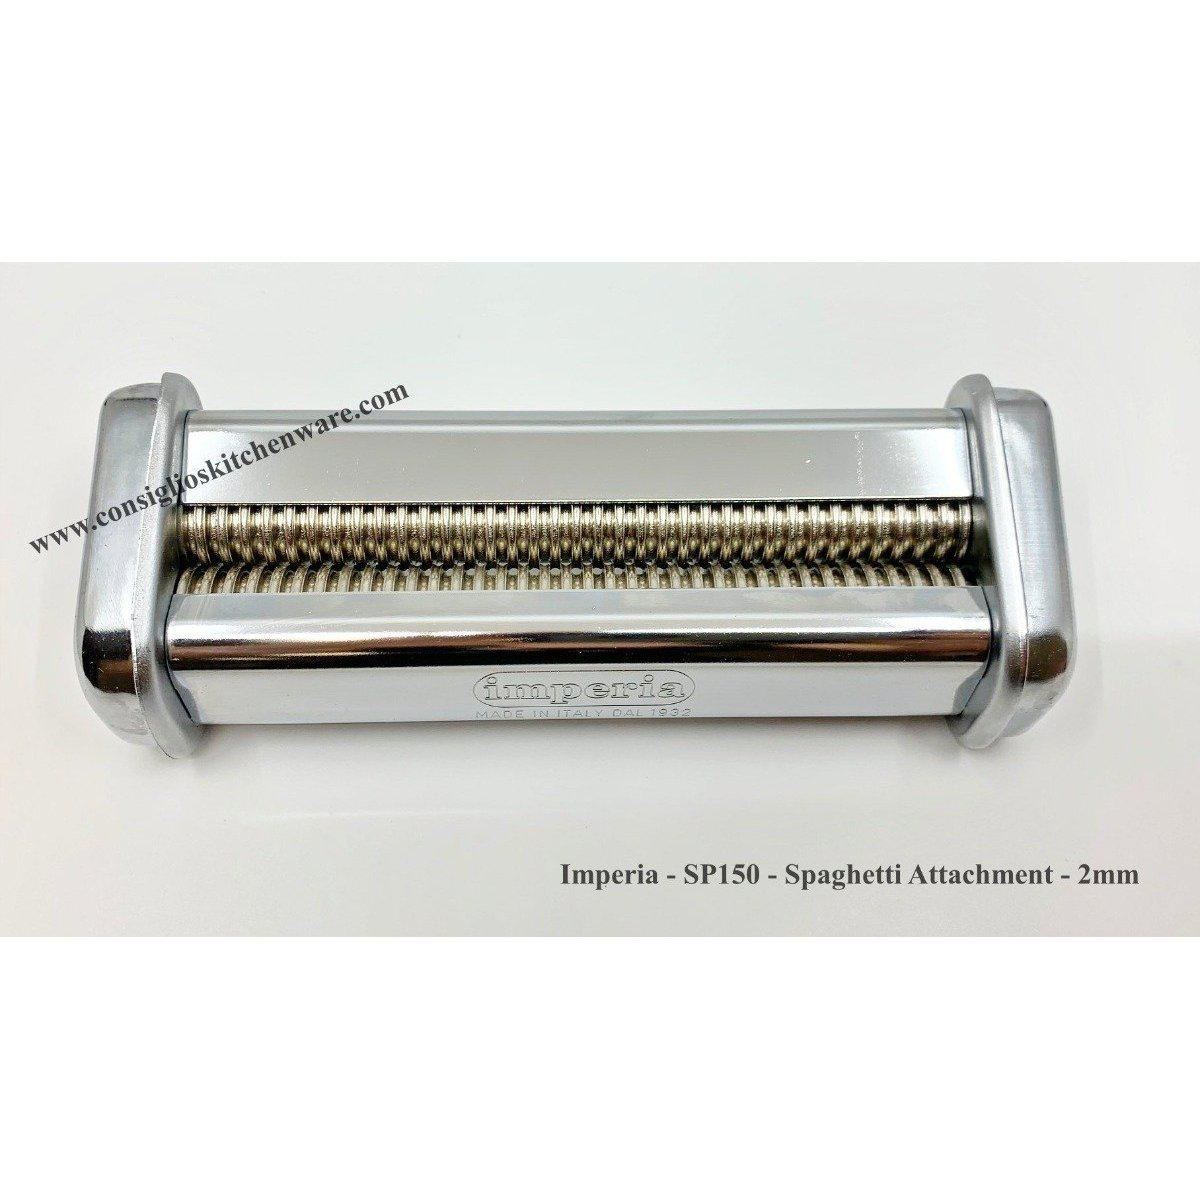 Imperia - SP150 - Spaghetti Attachment - 2mm